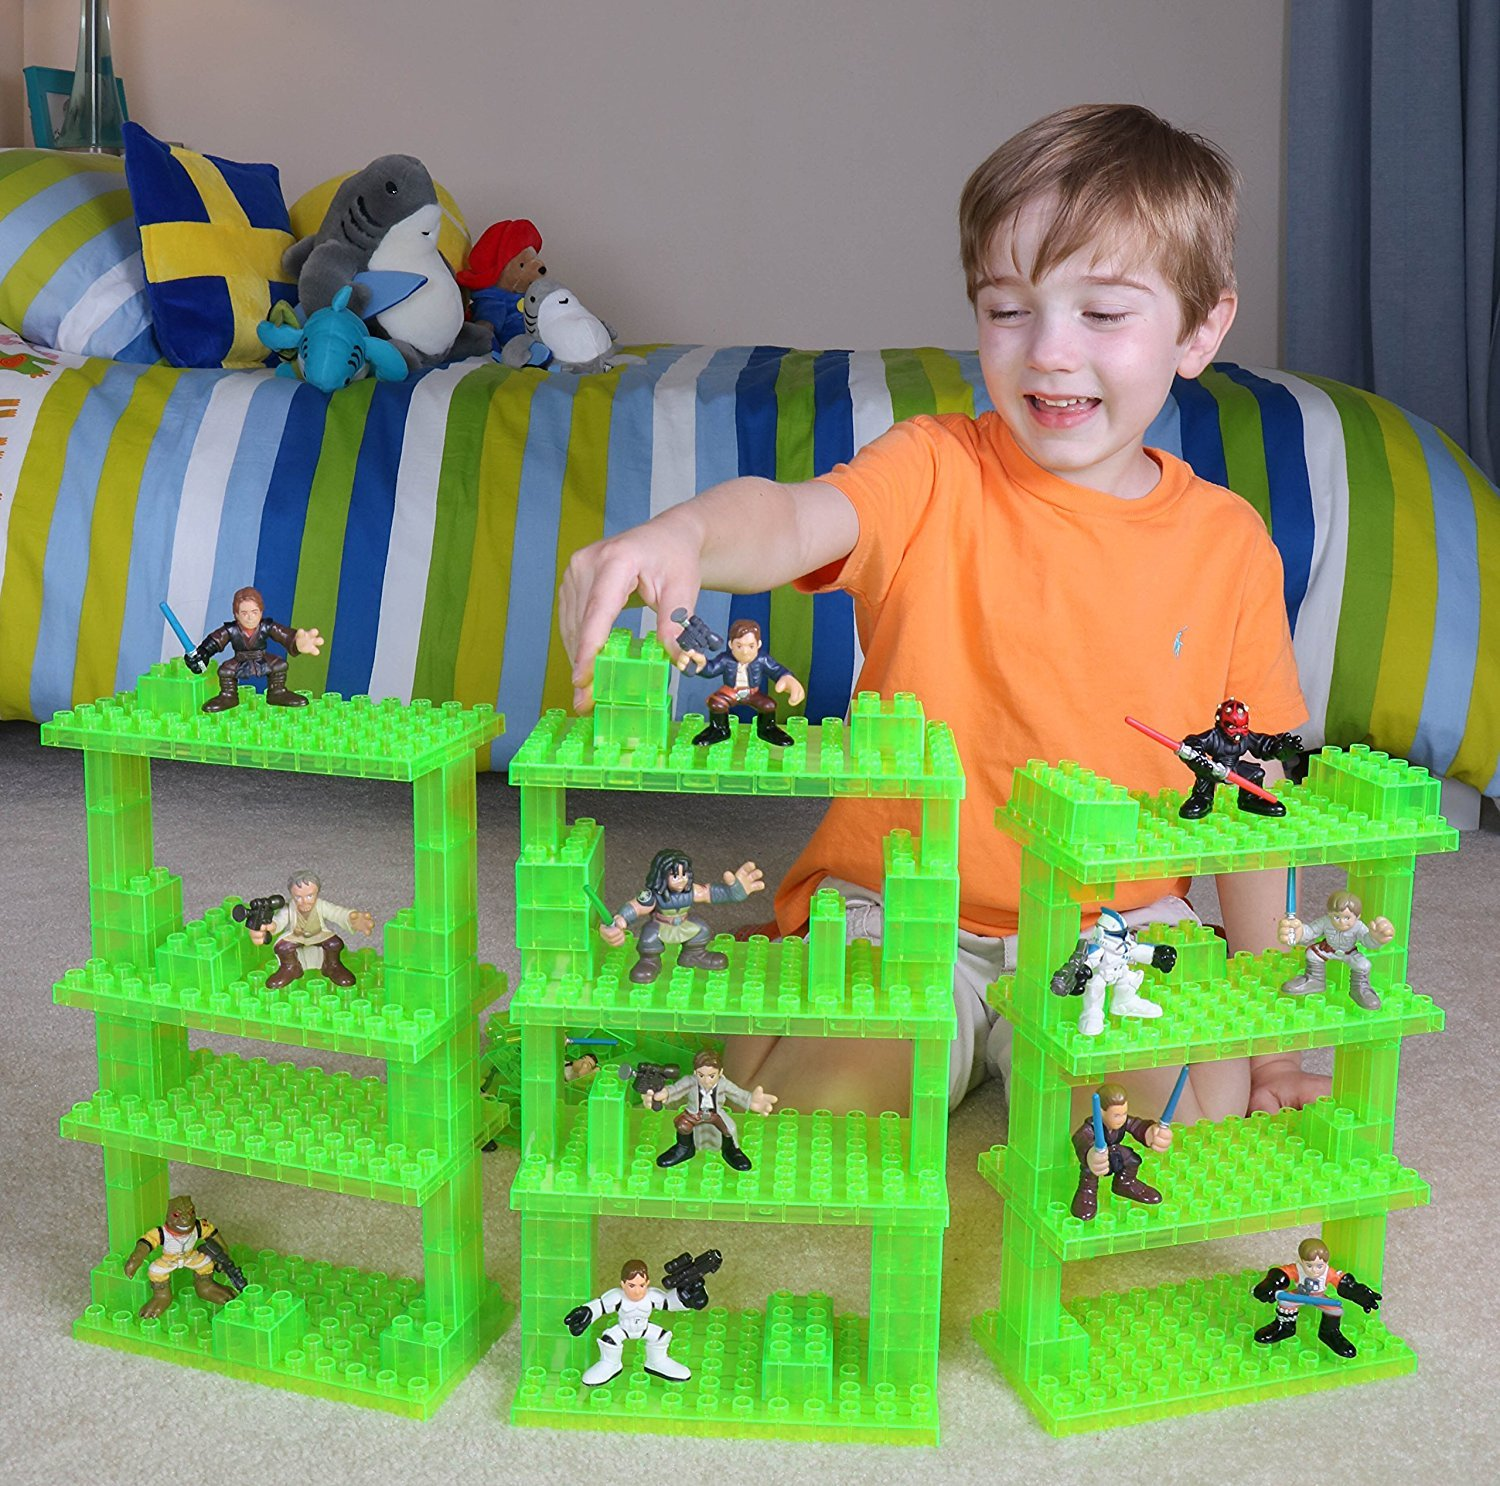 Building Bricks /& Baseplates Strictly Briks Classic Big Briks 96 Piece Set 100/% Compatible with All Major Brands Clear Green Ages 3+ Large Pegs for Toddlers Tower Construction